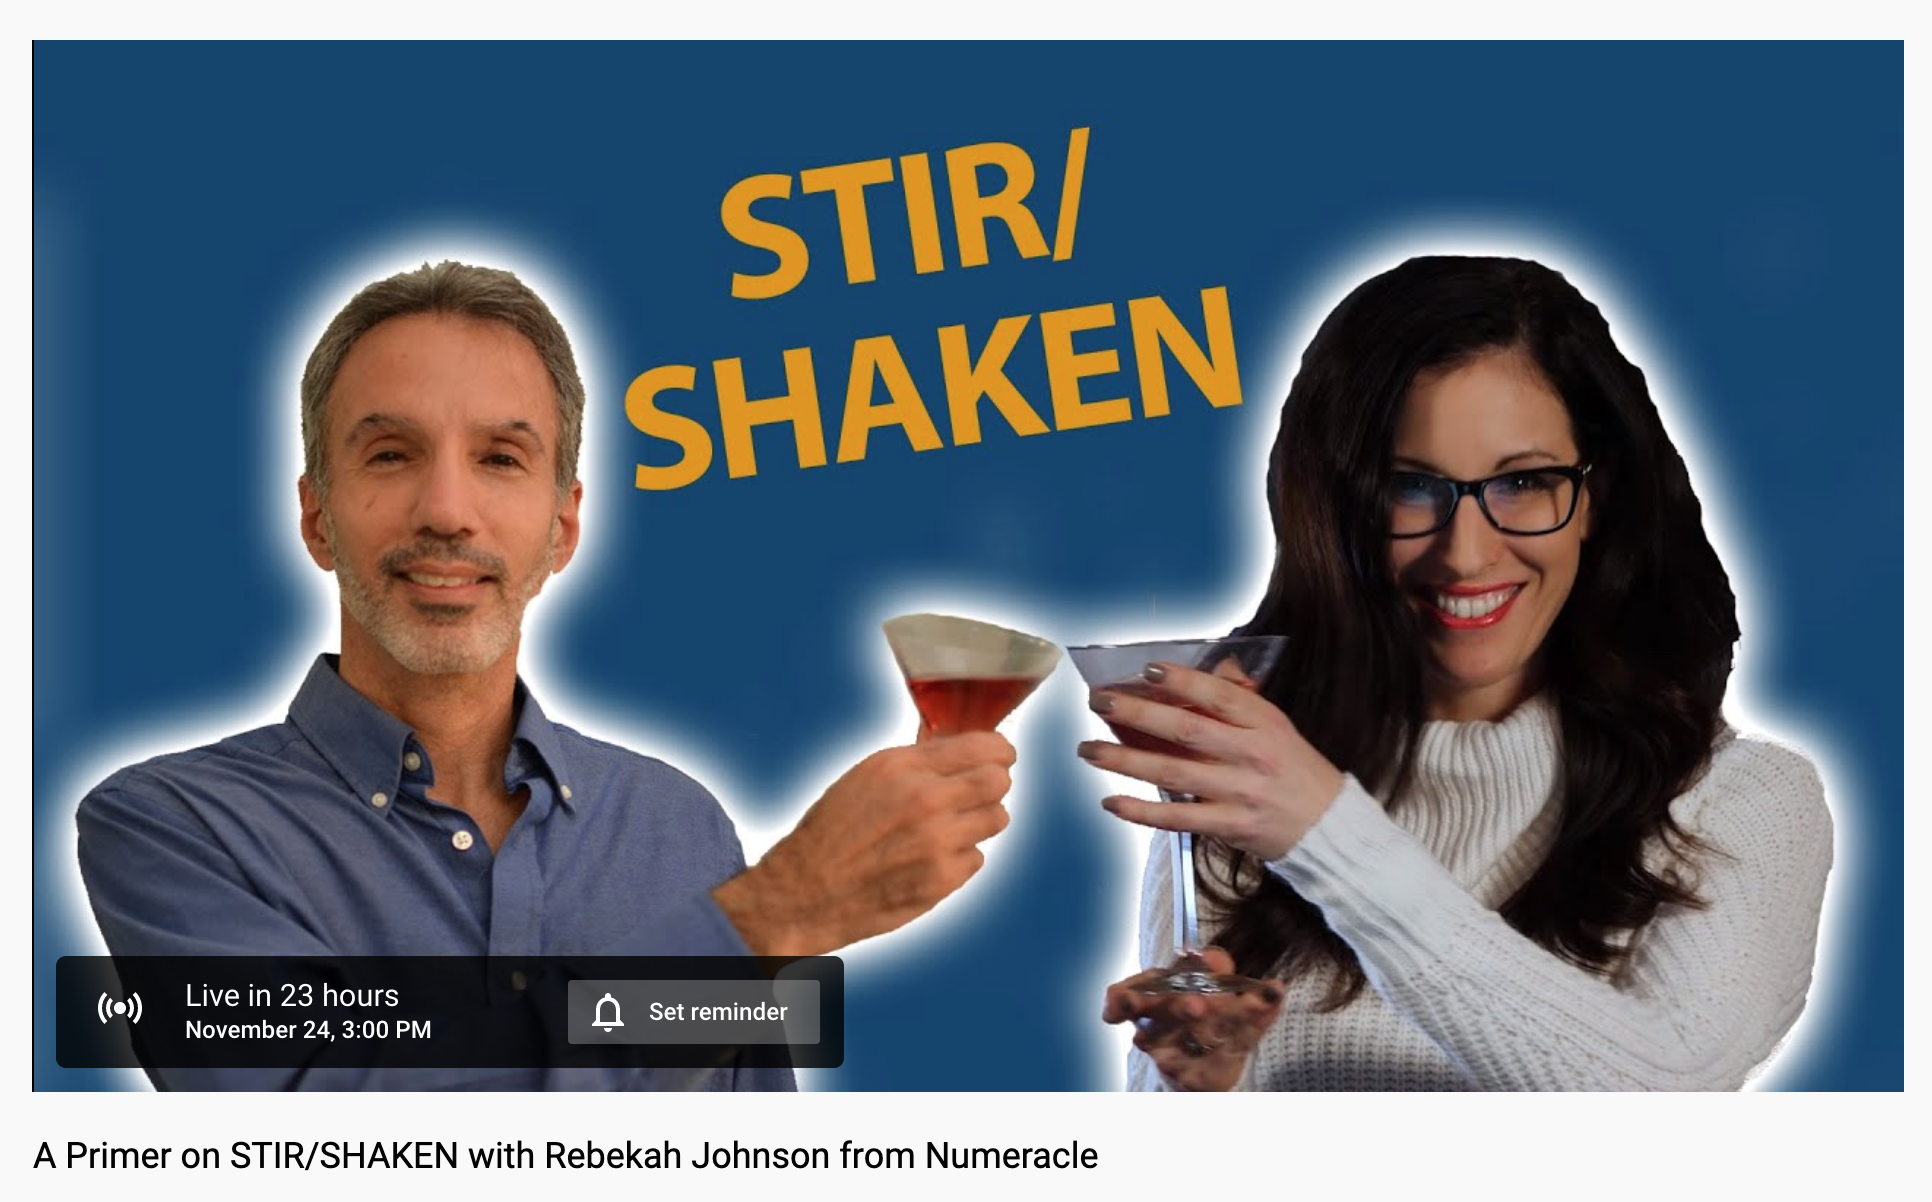 A Primer on STIR/SHAKEN with Rebekah Johnson from Numeracle